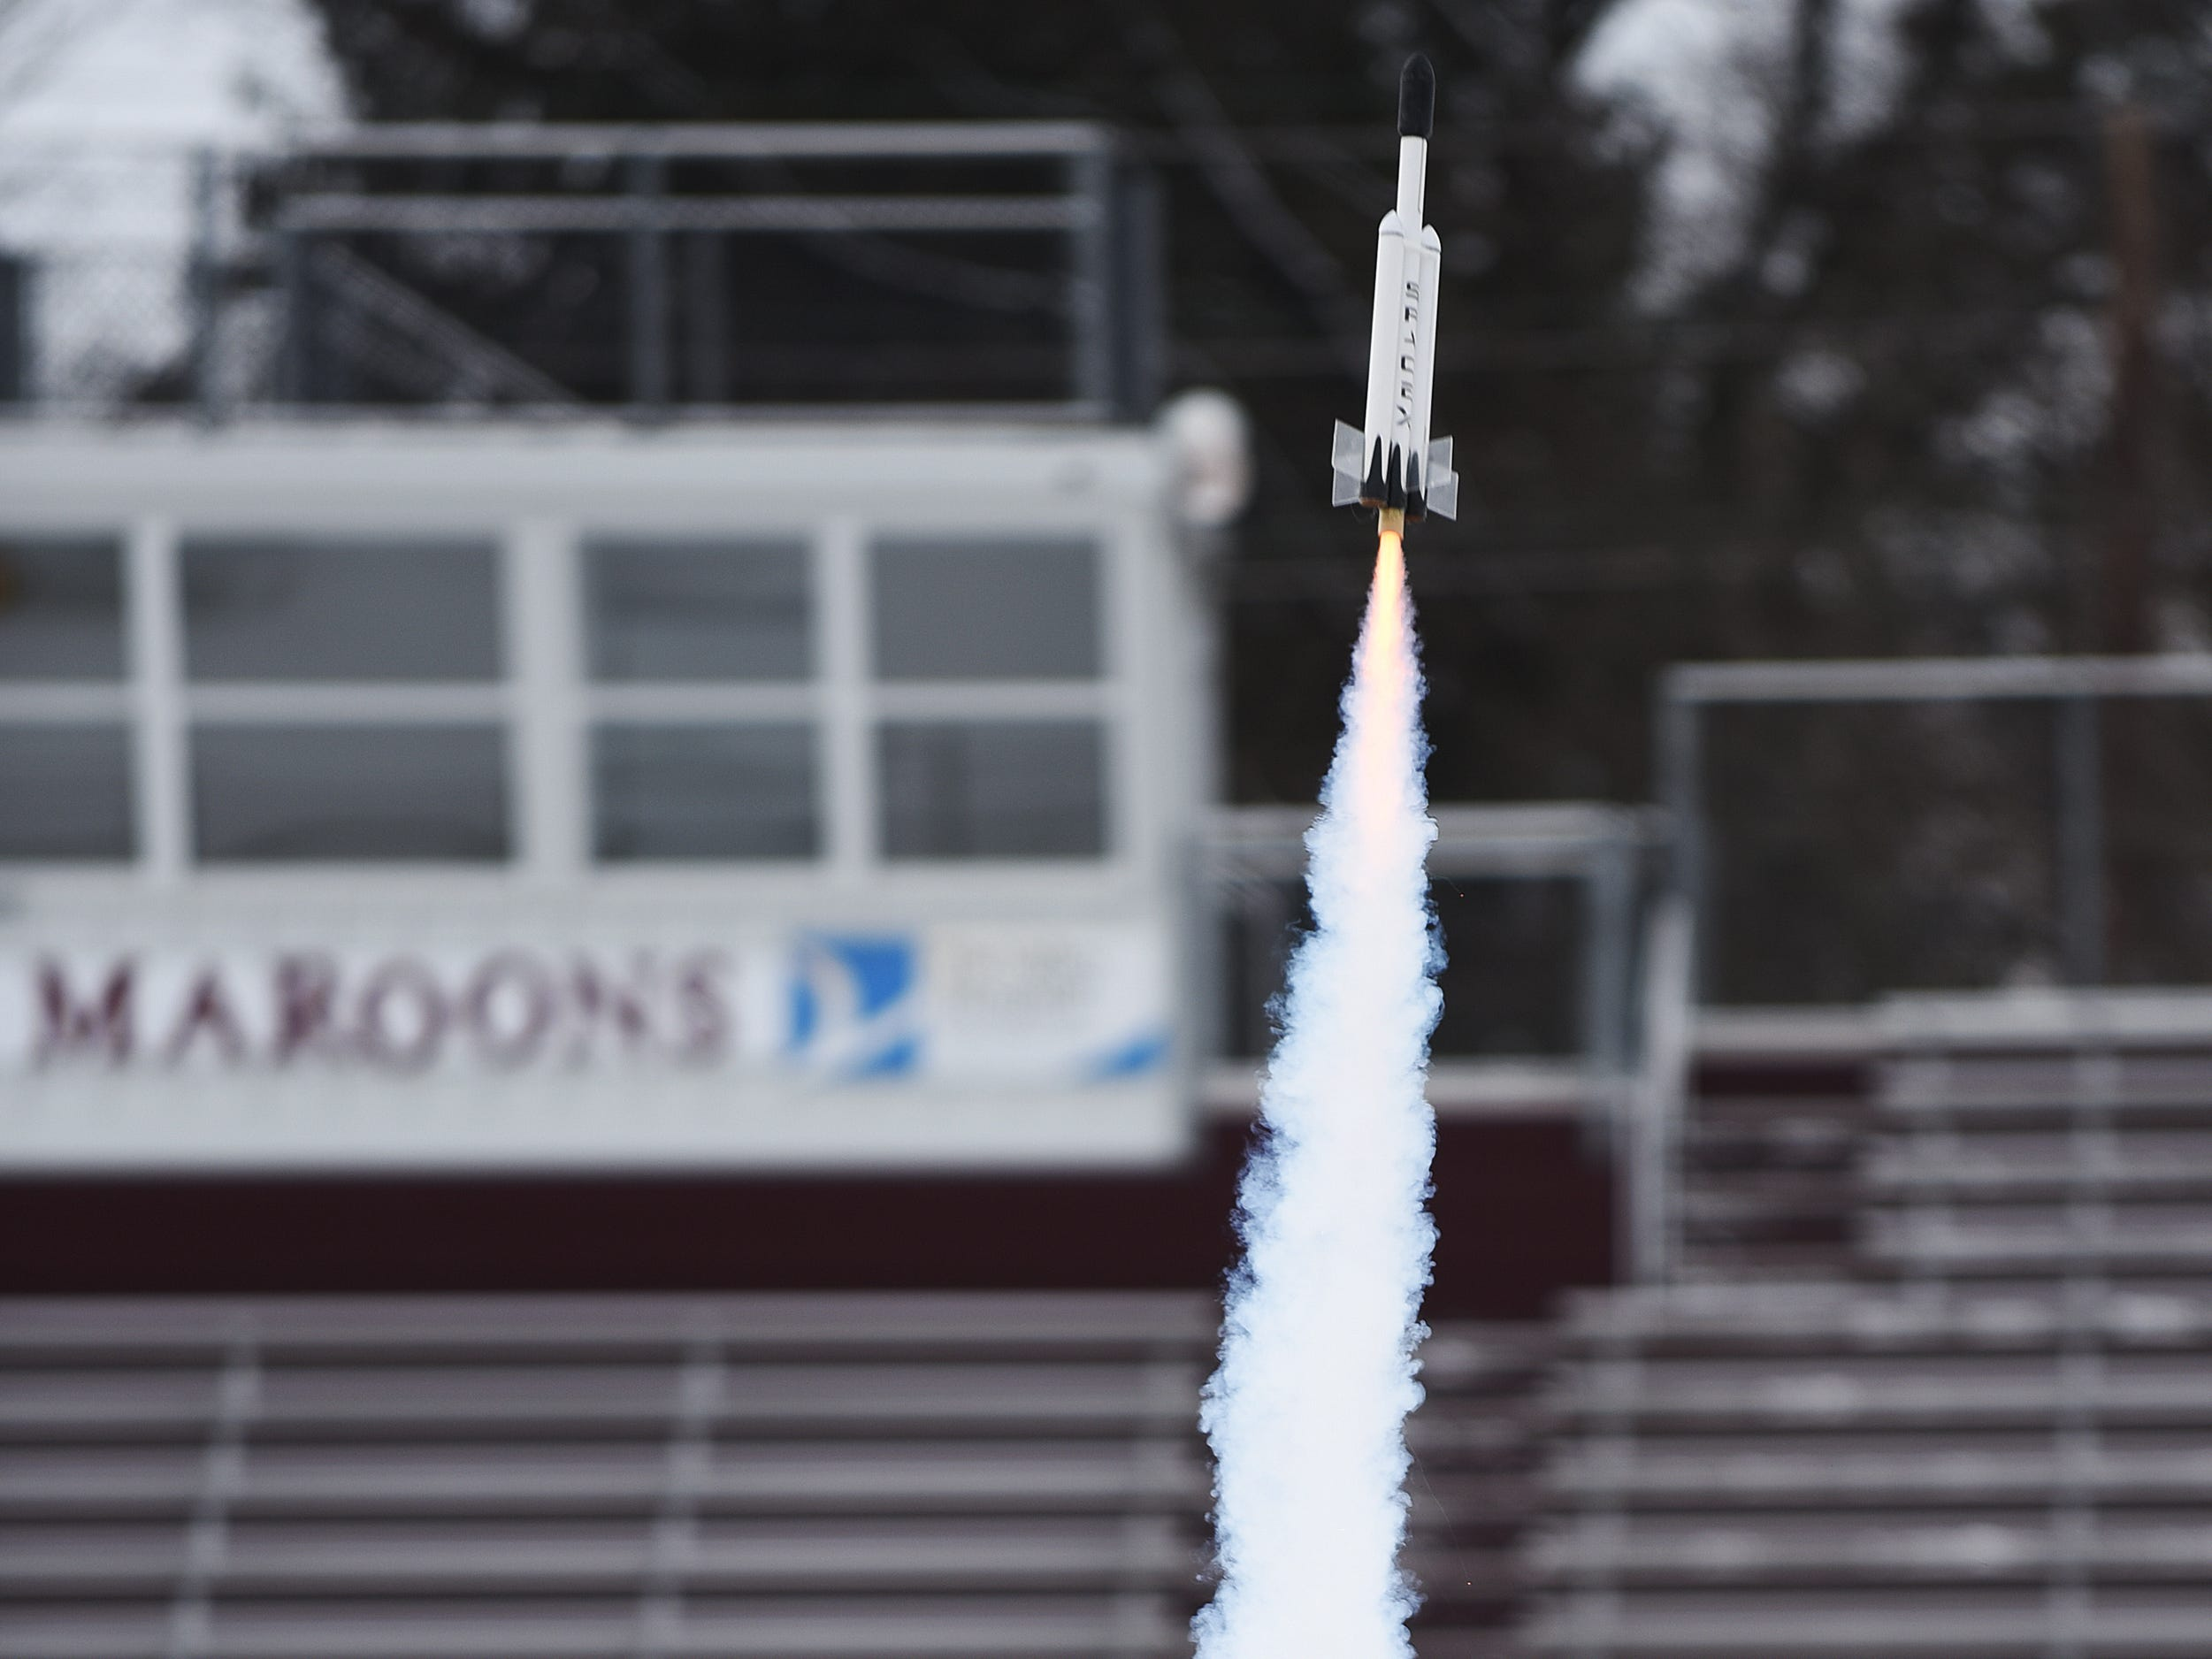 A rocket tkes flight during the Rocket Launch on Super Science Saturday held at Ridgewood High School in Ridgewood on Saturday March 2, 2019.